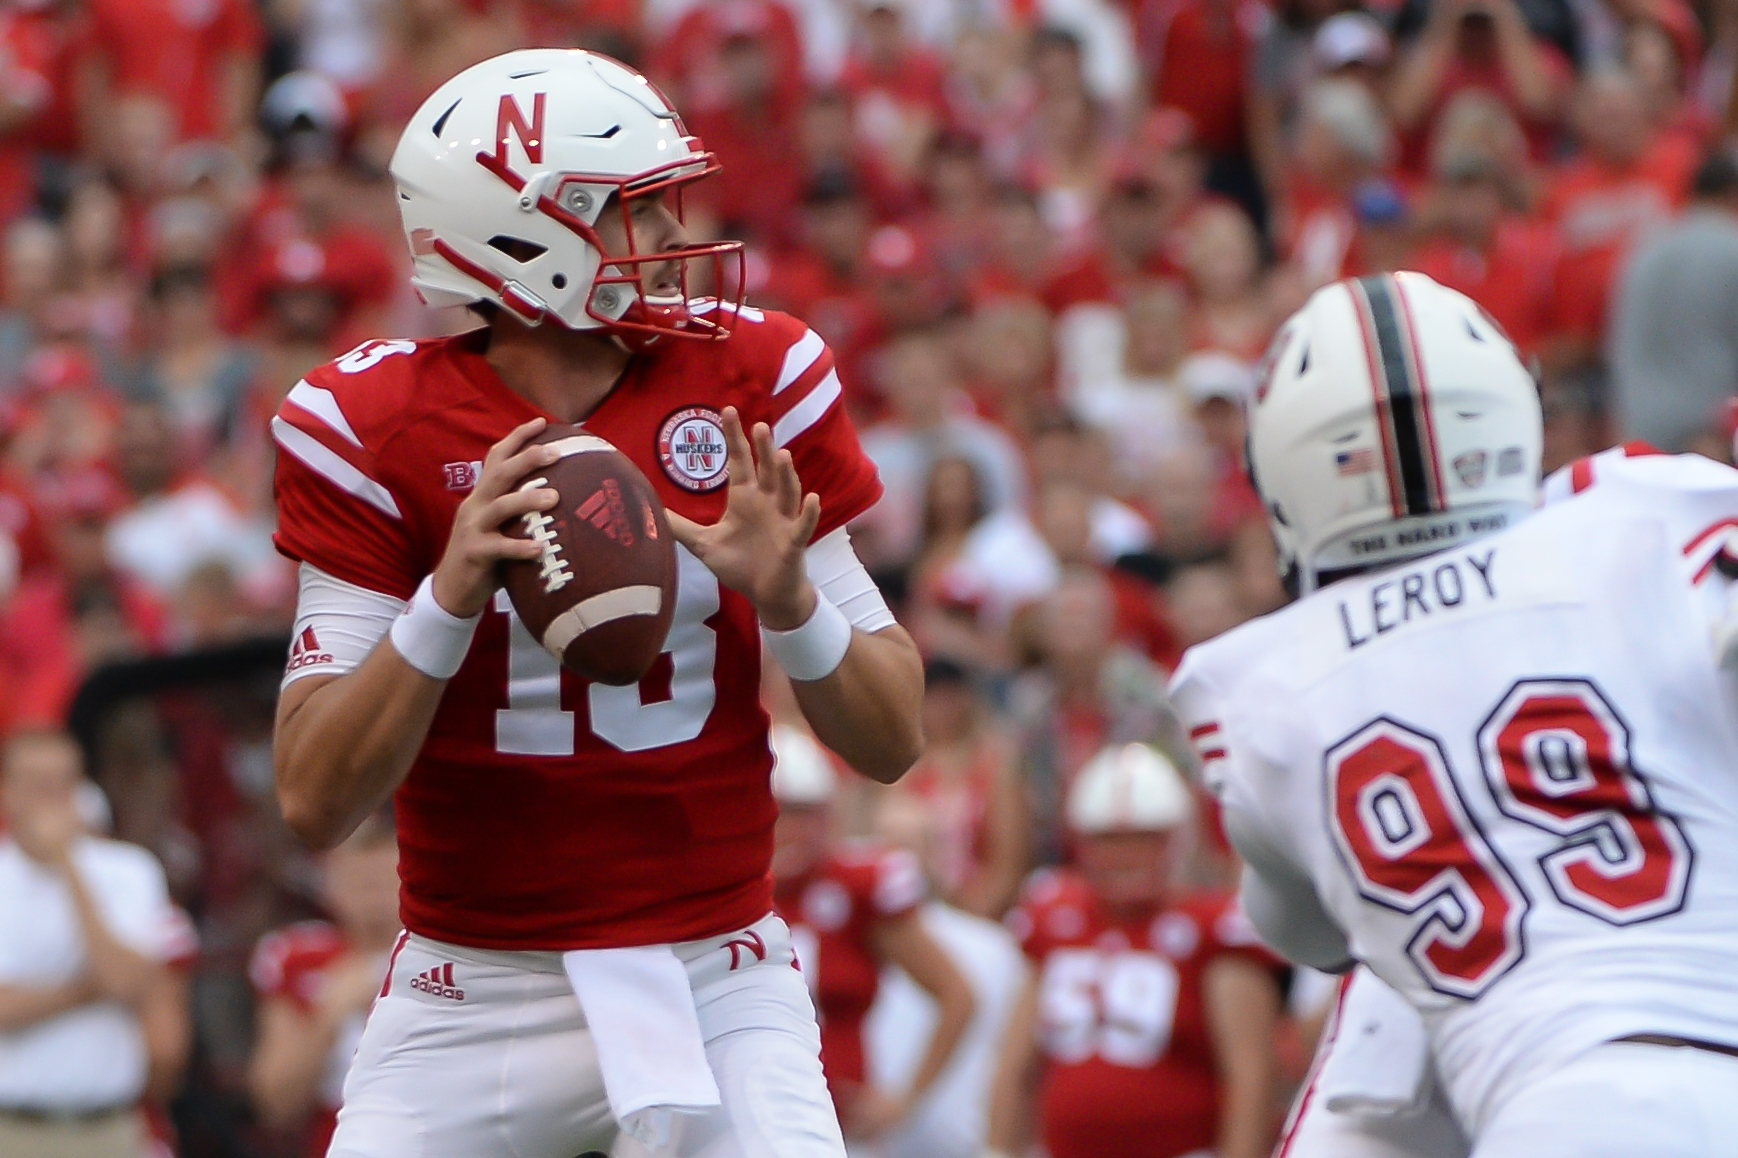 Northern Illinois Capitalizes On Nebraska's Charitable Offense To Pull Upset In Lincoln